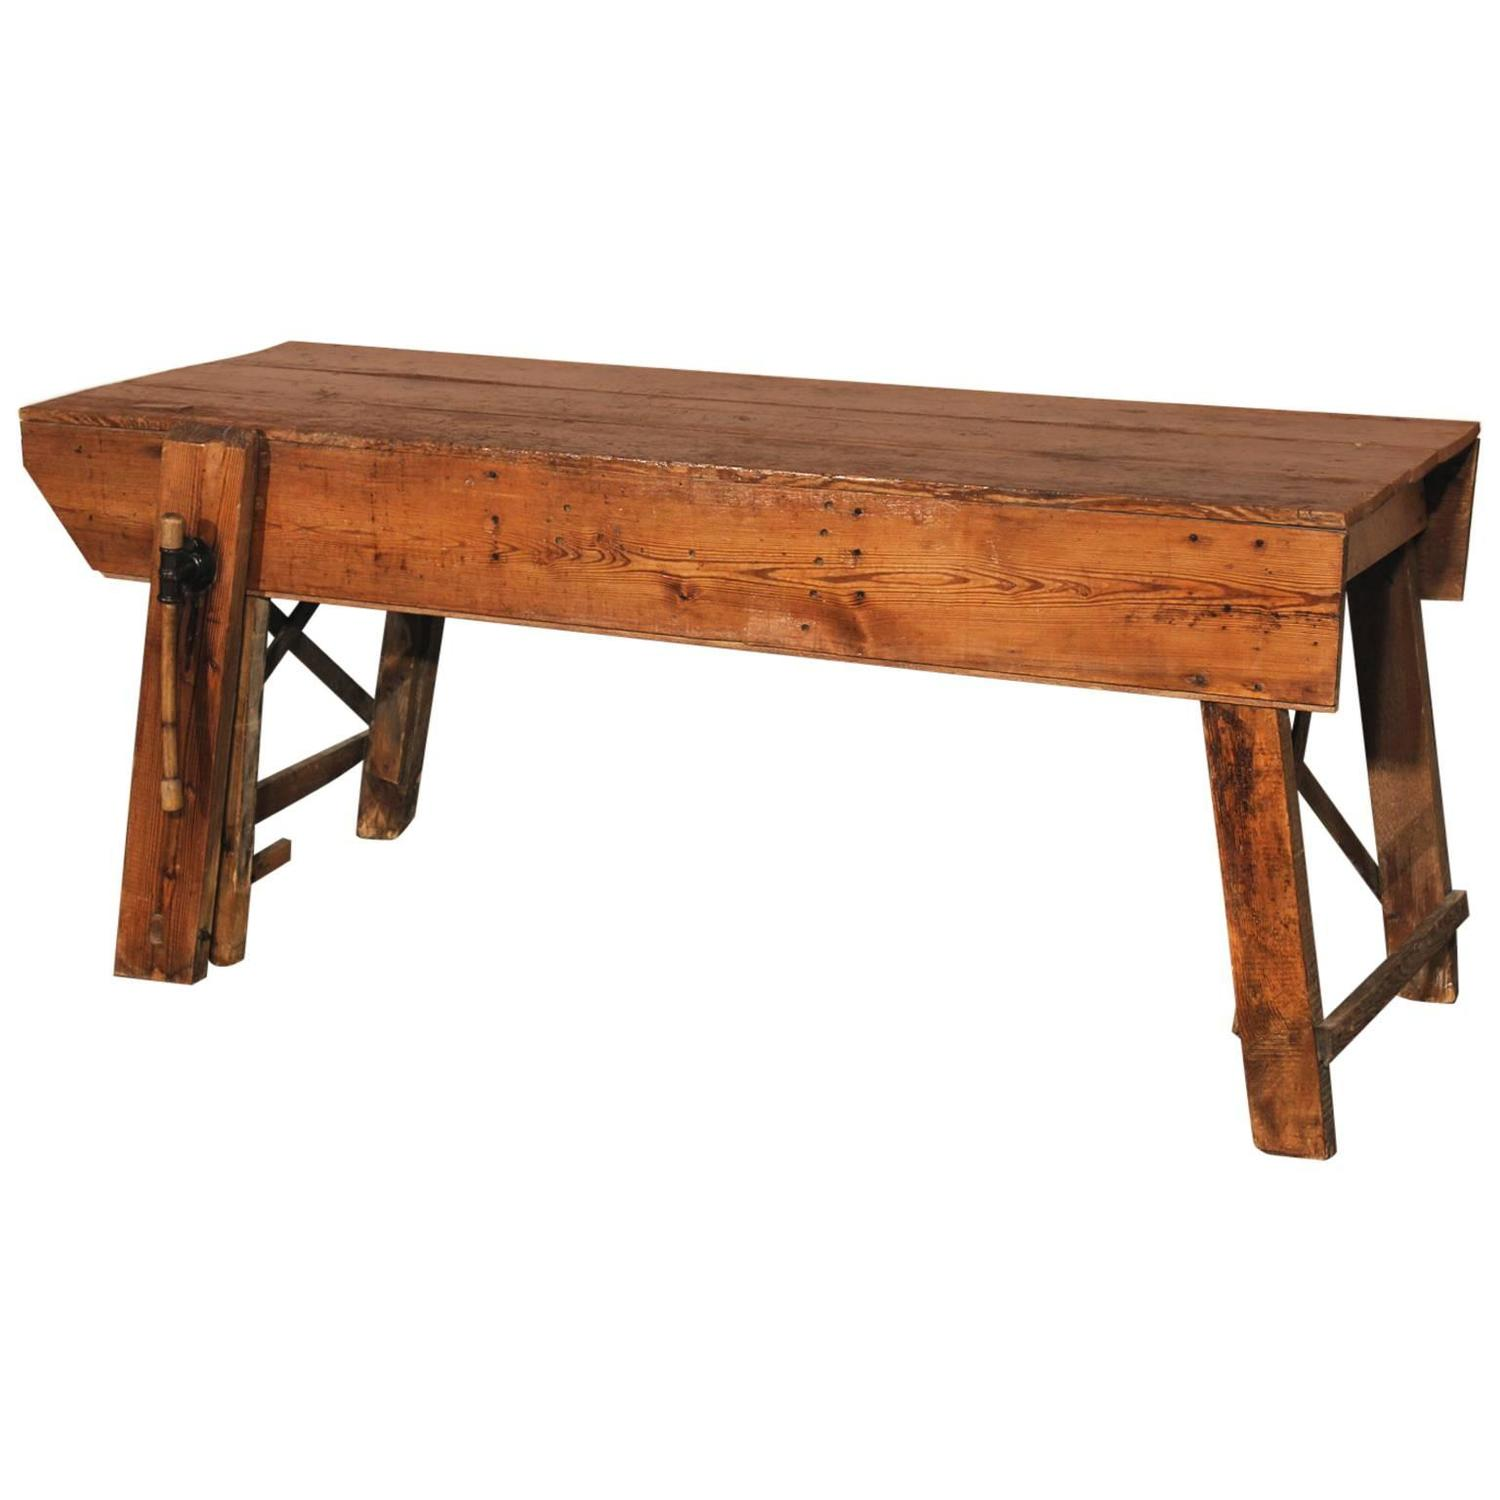 Primitive Industrial Farmhouse Style Dining Table  : 4575473z from www.1stdibs.com size 1500 x 1500 jpeg 88kB